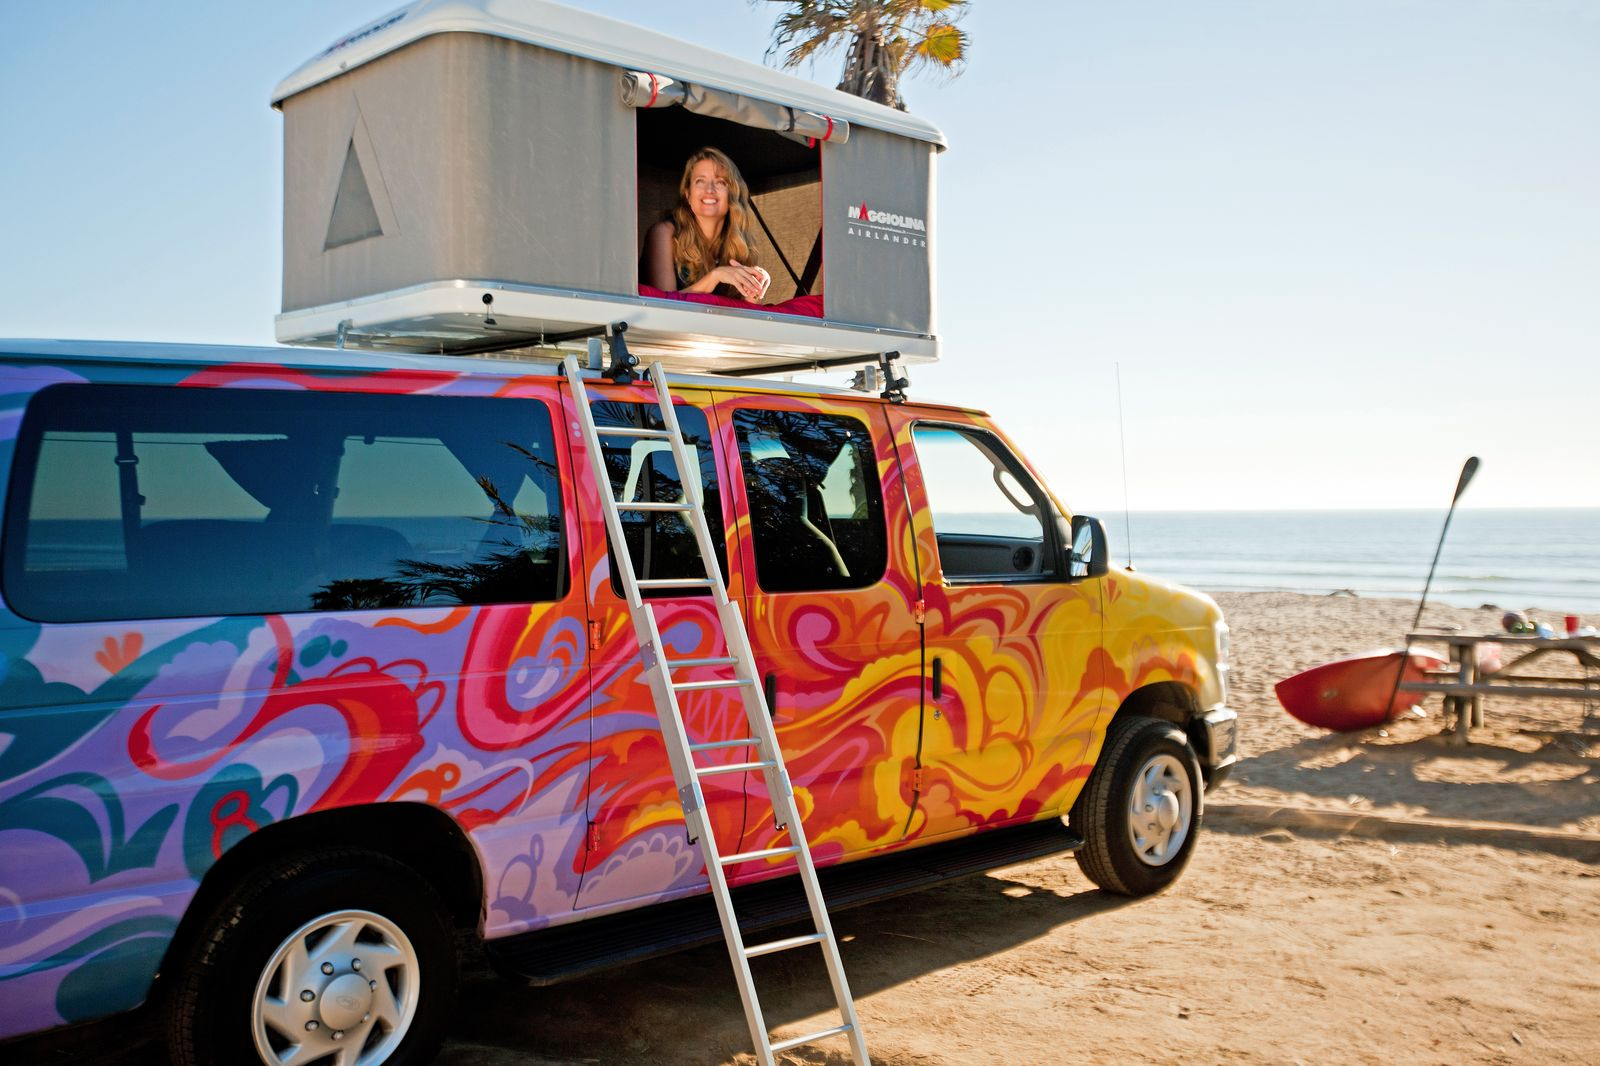 camping trailer usa pollak plug wiring diagram camper vans for rent 11 companies that let you try van